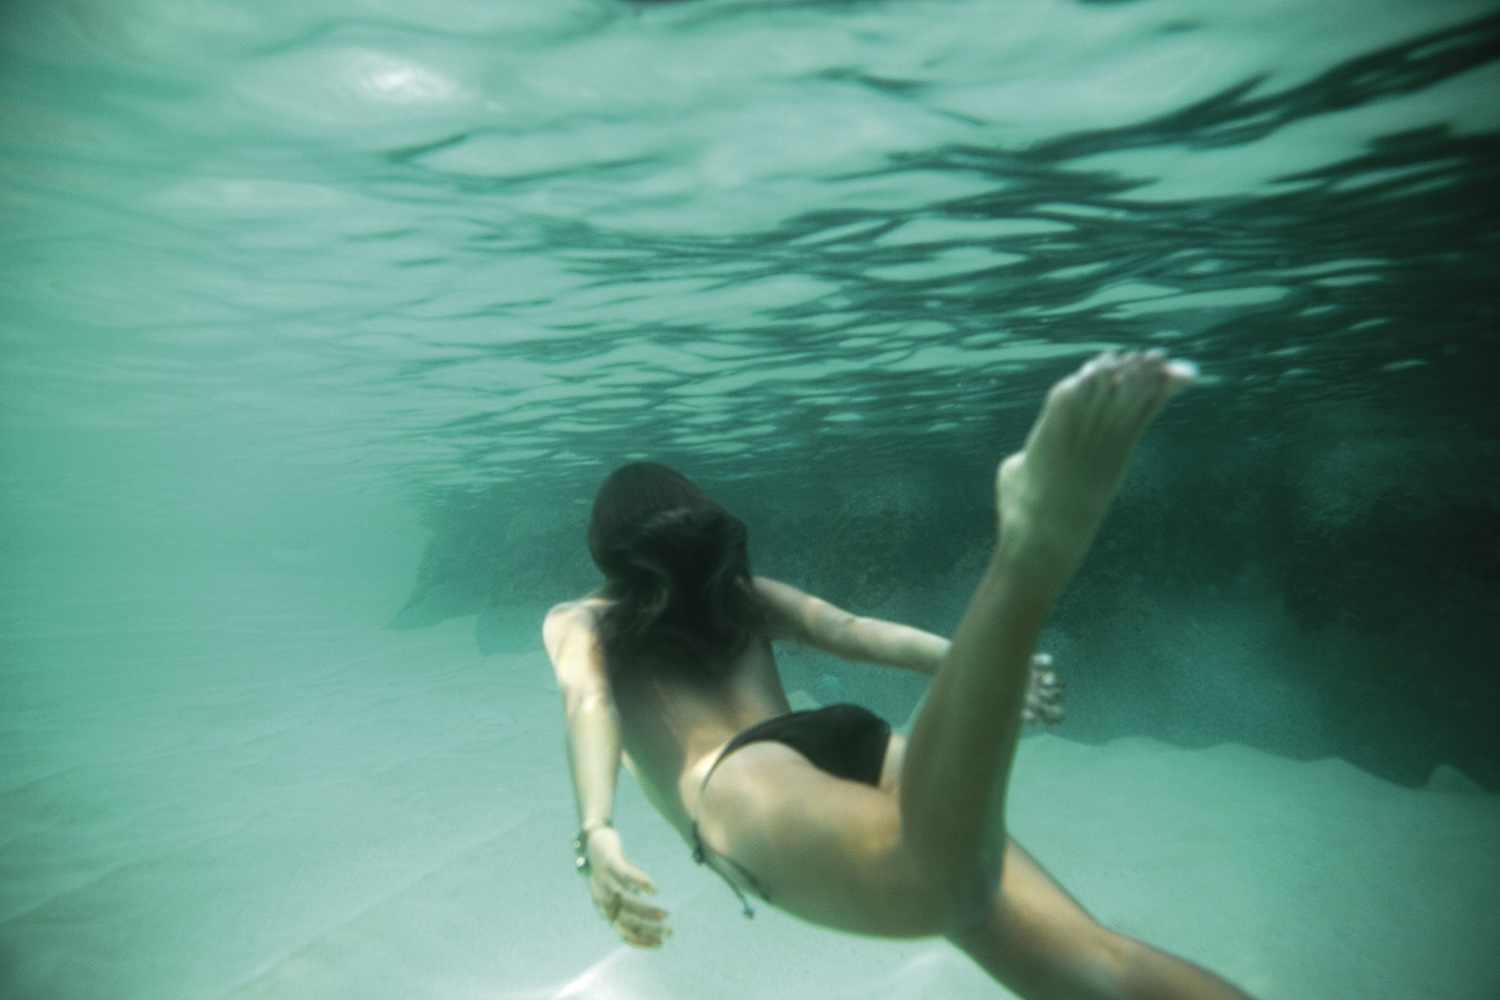 Our model swims topless underwater